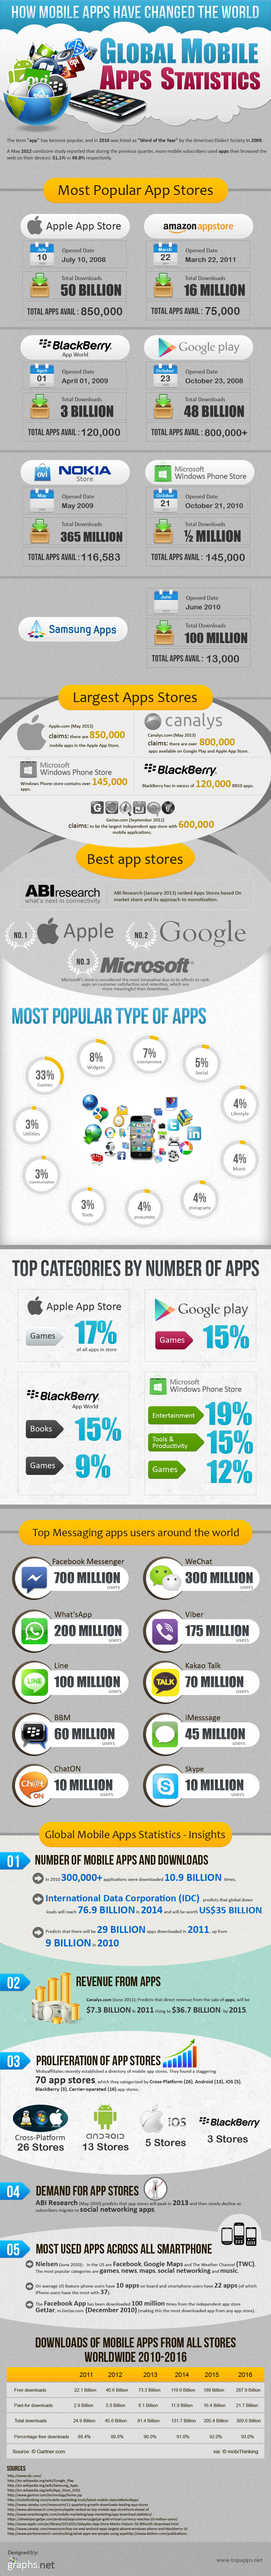 mobile apps changed the world